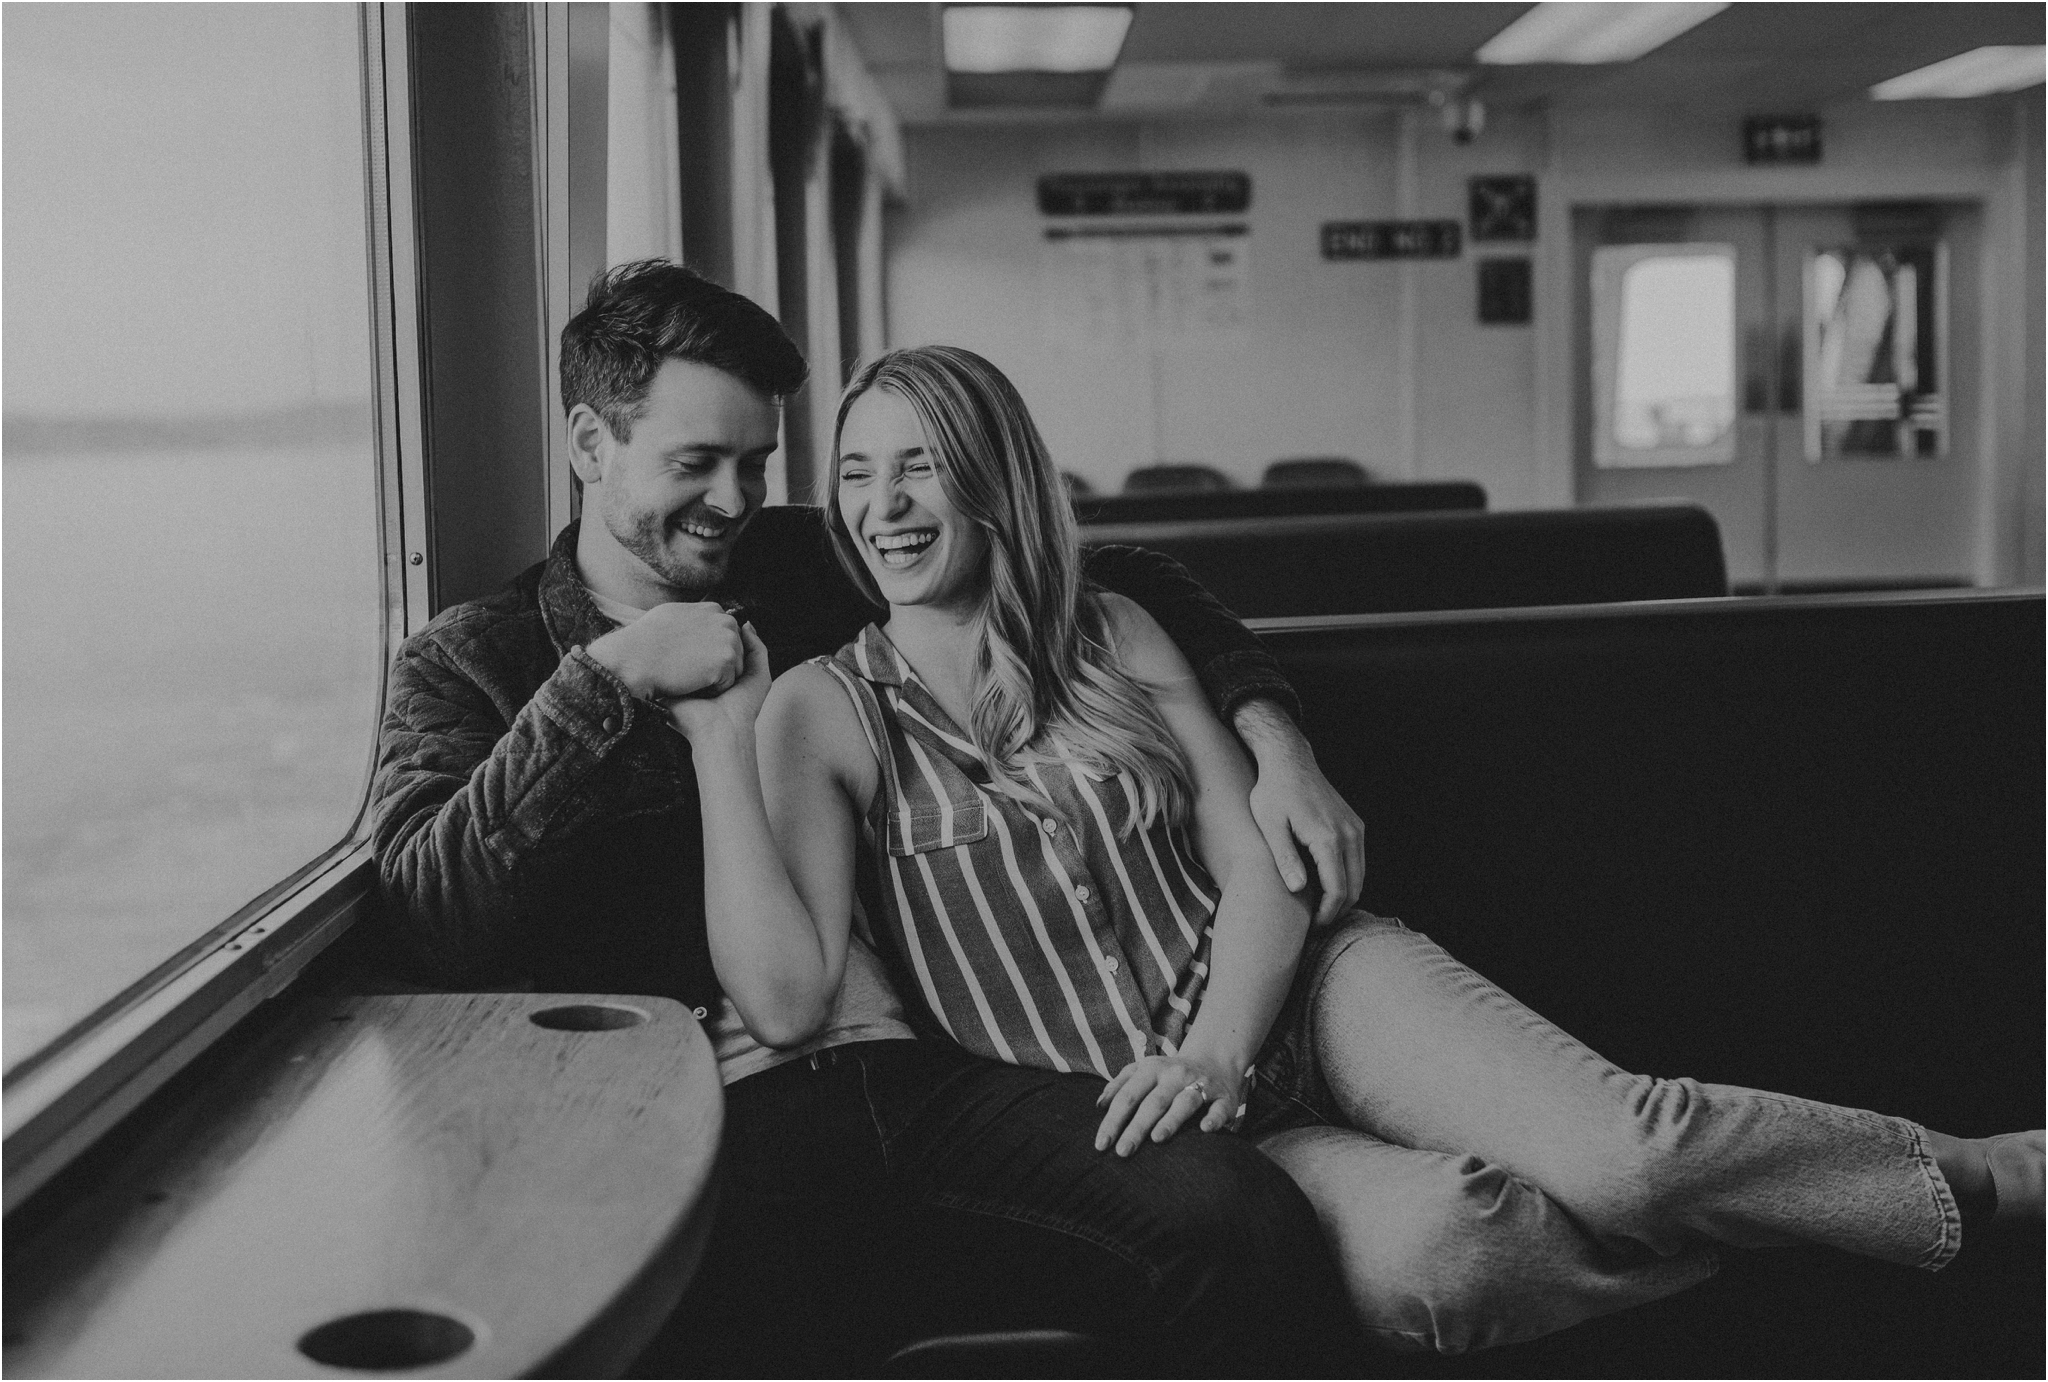 rile-and-ryan-fauntleroy-ferry-vashon-island-seattle-engagement-session-002.jpg